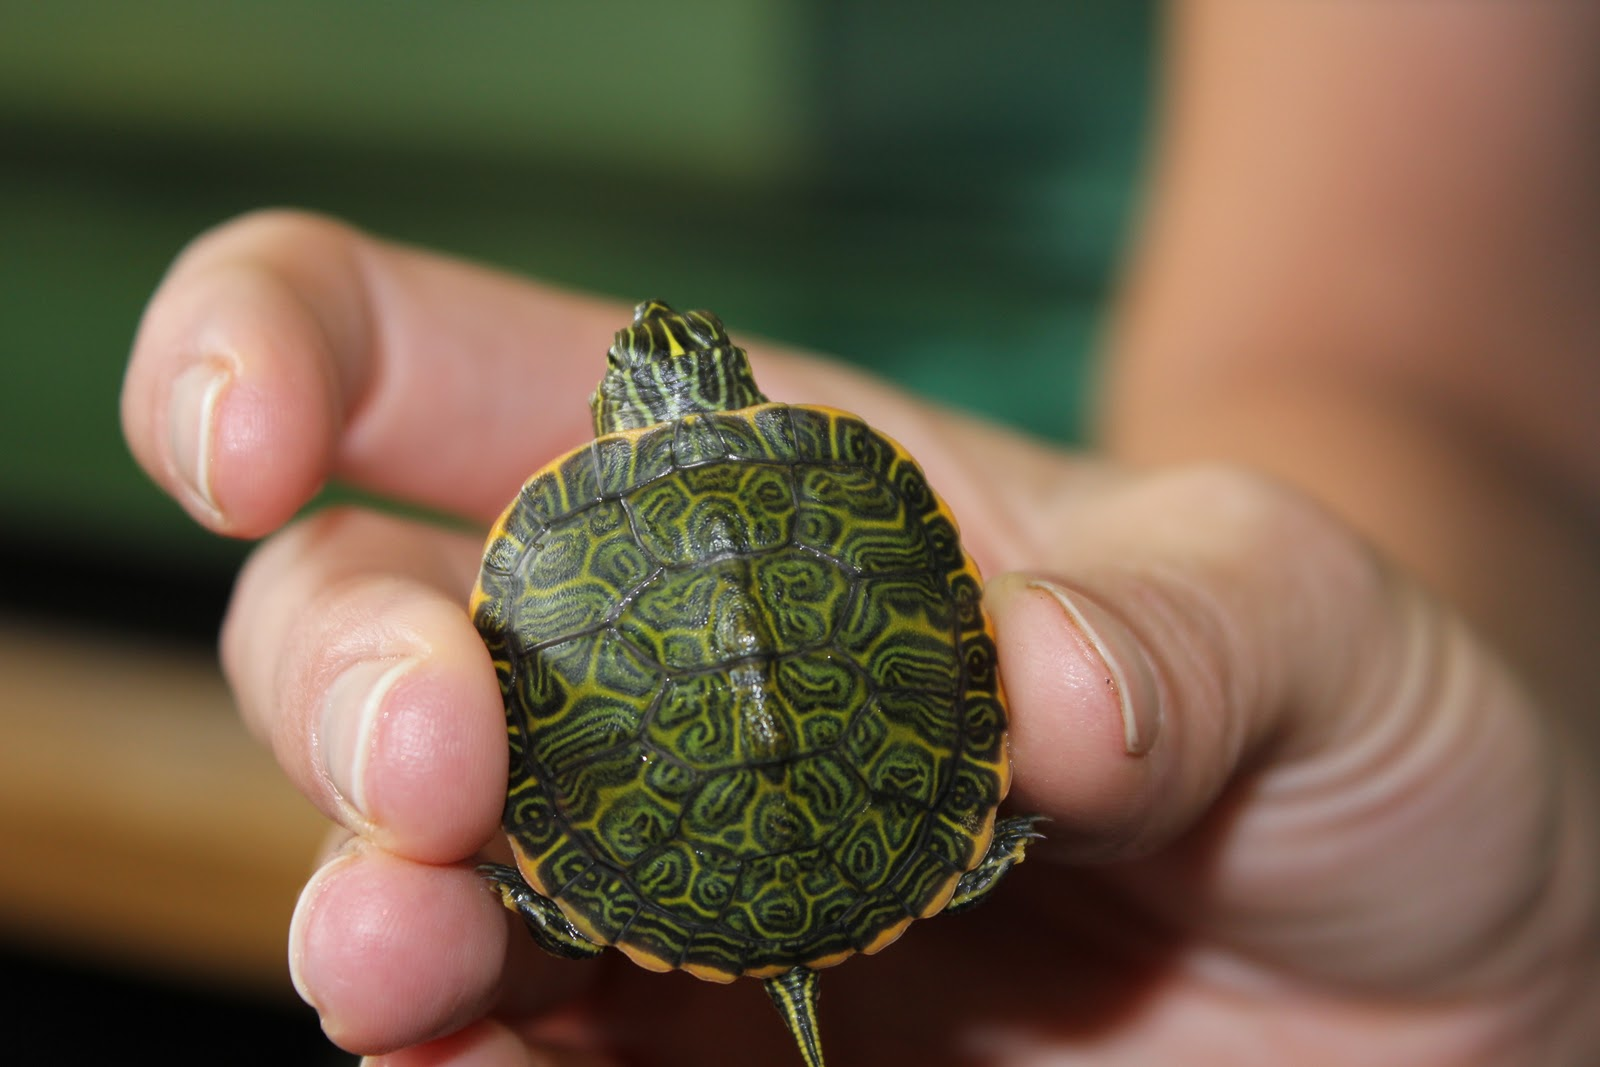 Scientists initially thought the Northern red-bellied cooter was a ...